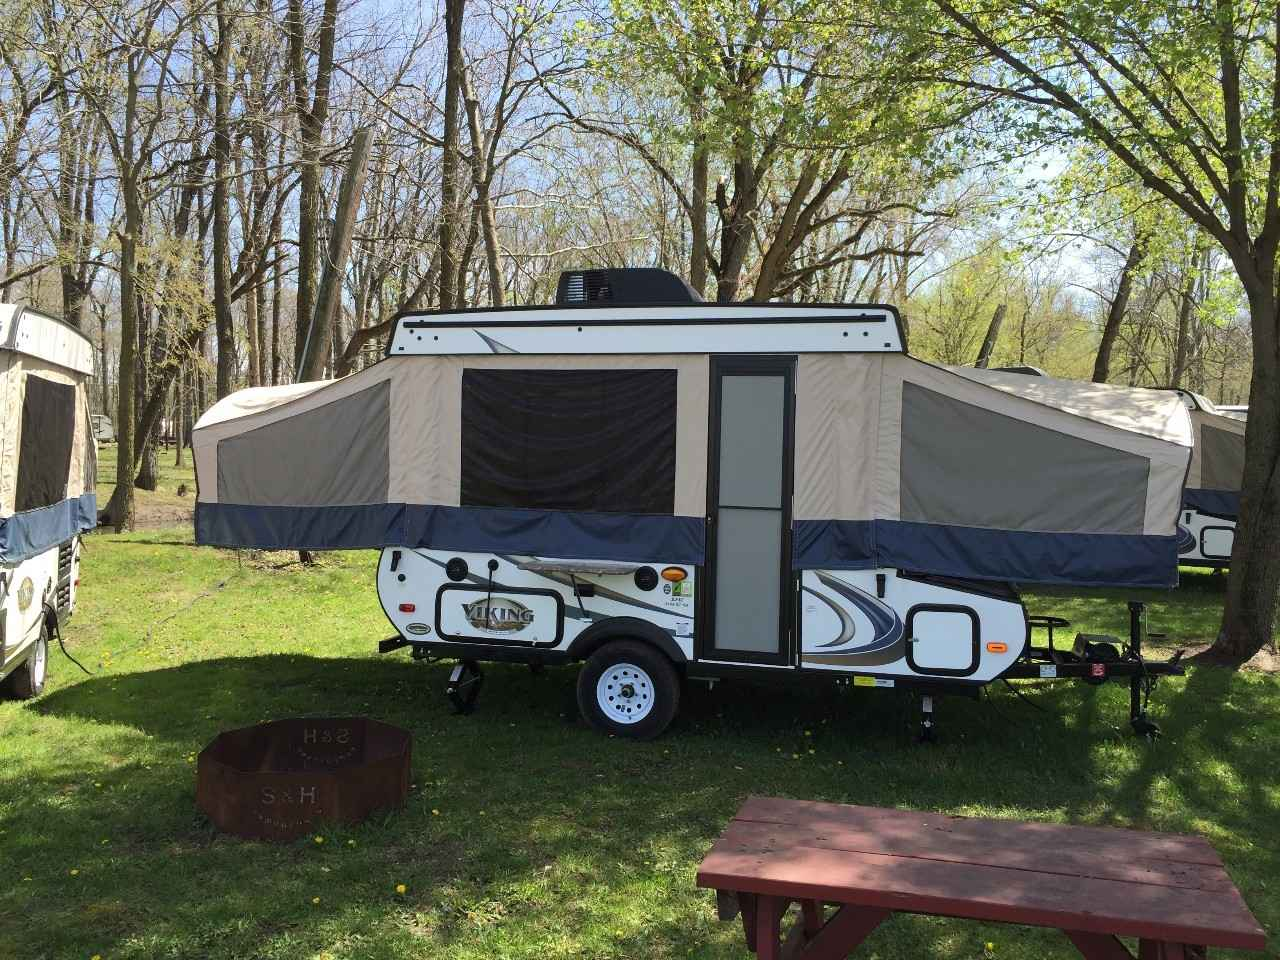 2017 used viking epic 2108st pop up camper in indiana in. Black Bedroom Furniture Sets. Home Design Ideas